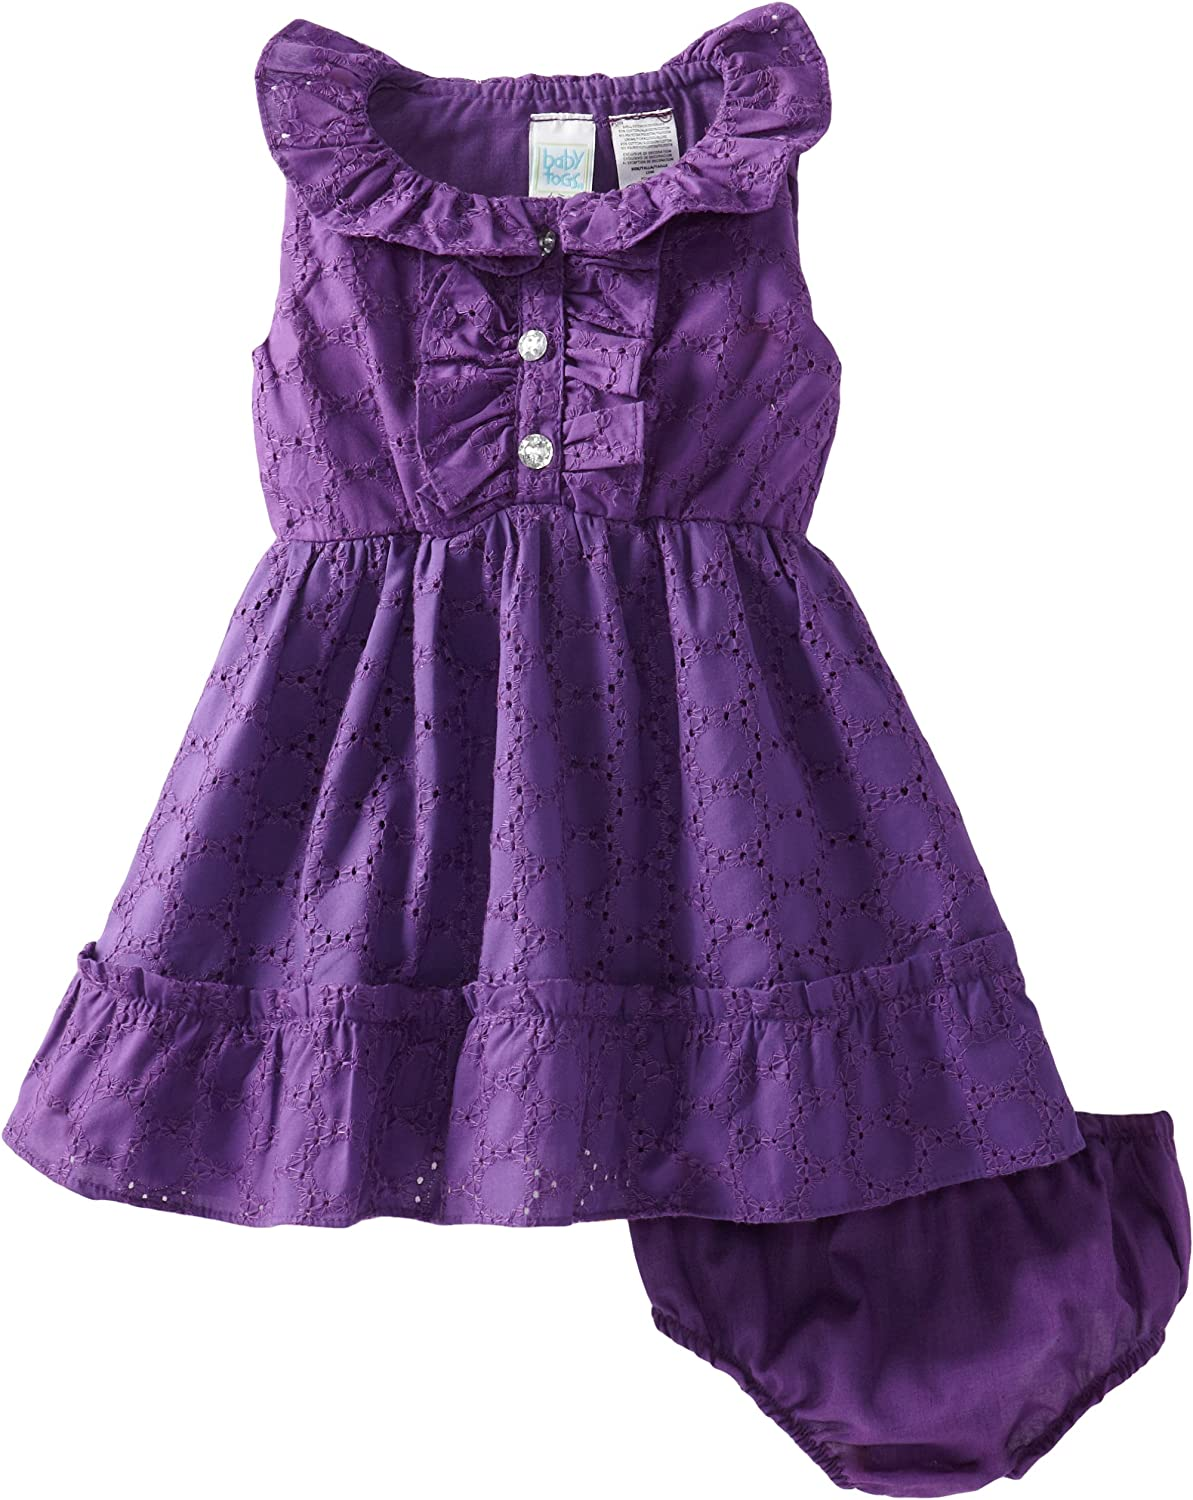 Baby Togs Baby Girls Eyelet Dress